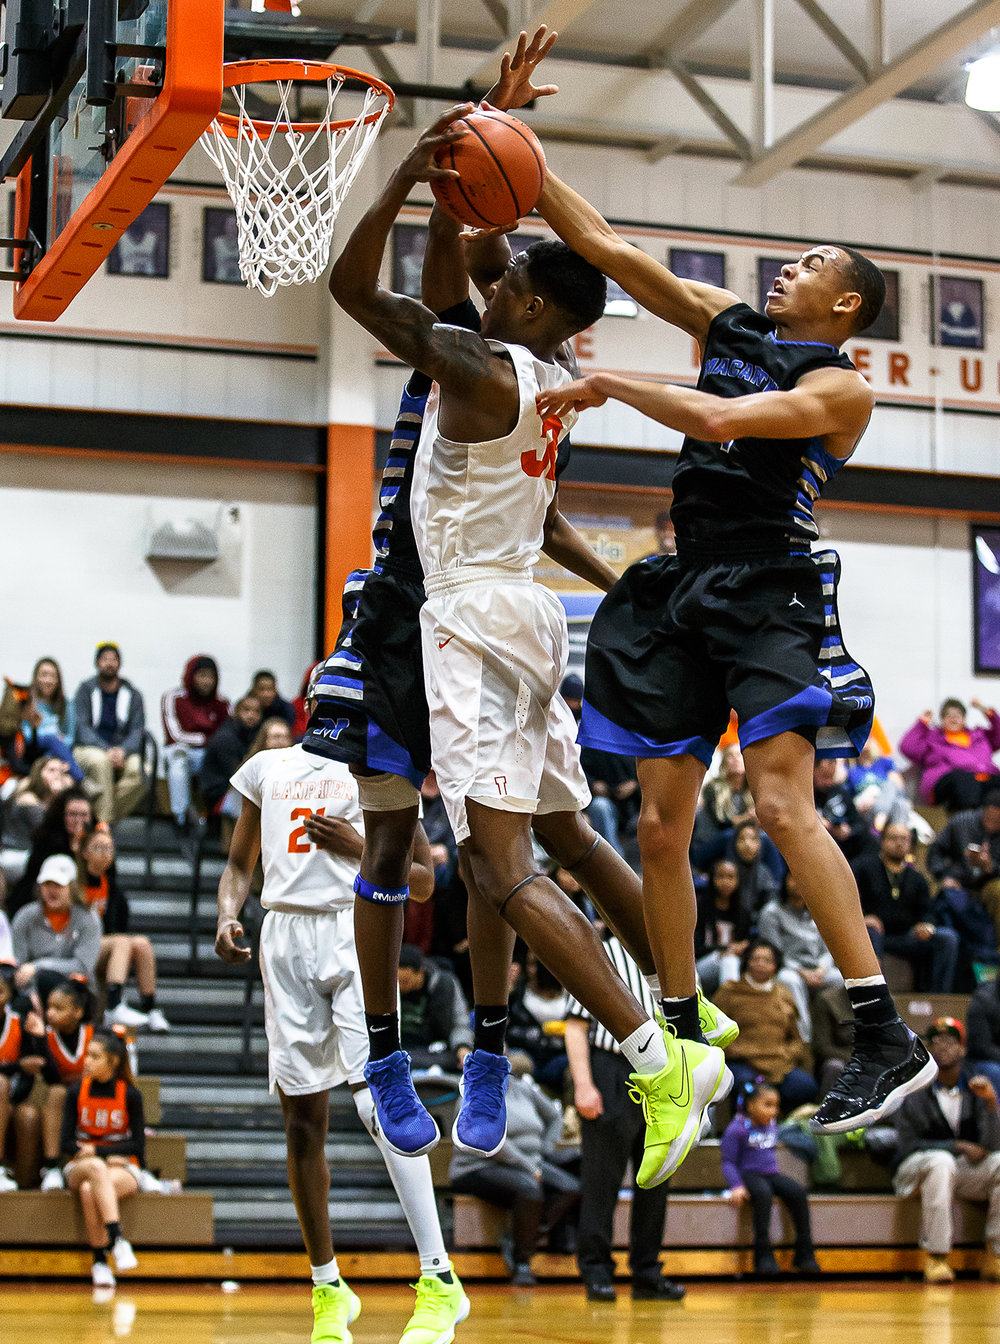 Decatur MacArthur's Zach Briggs (1) fouls Lanphier's Karl Wright (32) as he goes up to the basket in the second half at Lober-Nika gymnasium, Saturday, Feb. 10, 2018, in Springfield, Ill. [Justin L. Fowler/The State Journal-Register]